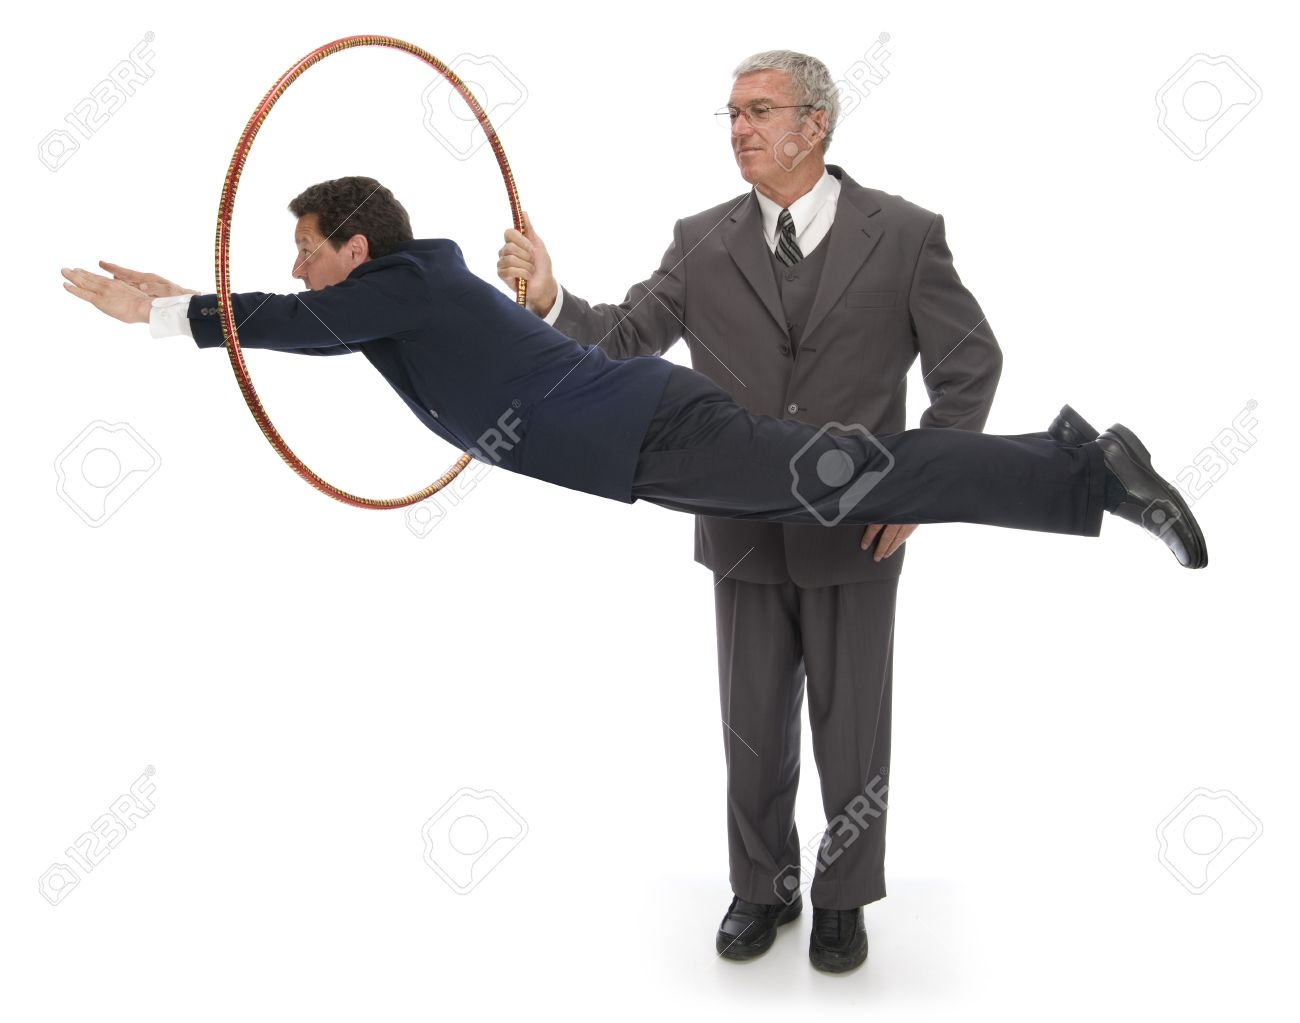 CEO holding up a hoop for his employee / client / vendor to jump through Stock Photo - 16947182